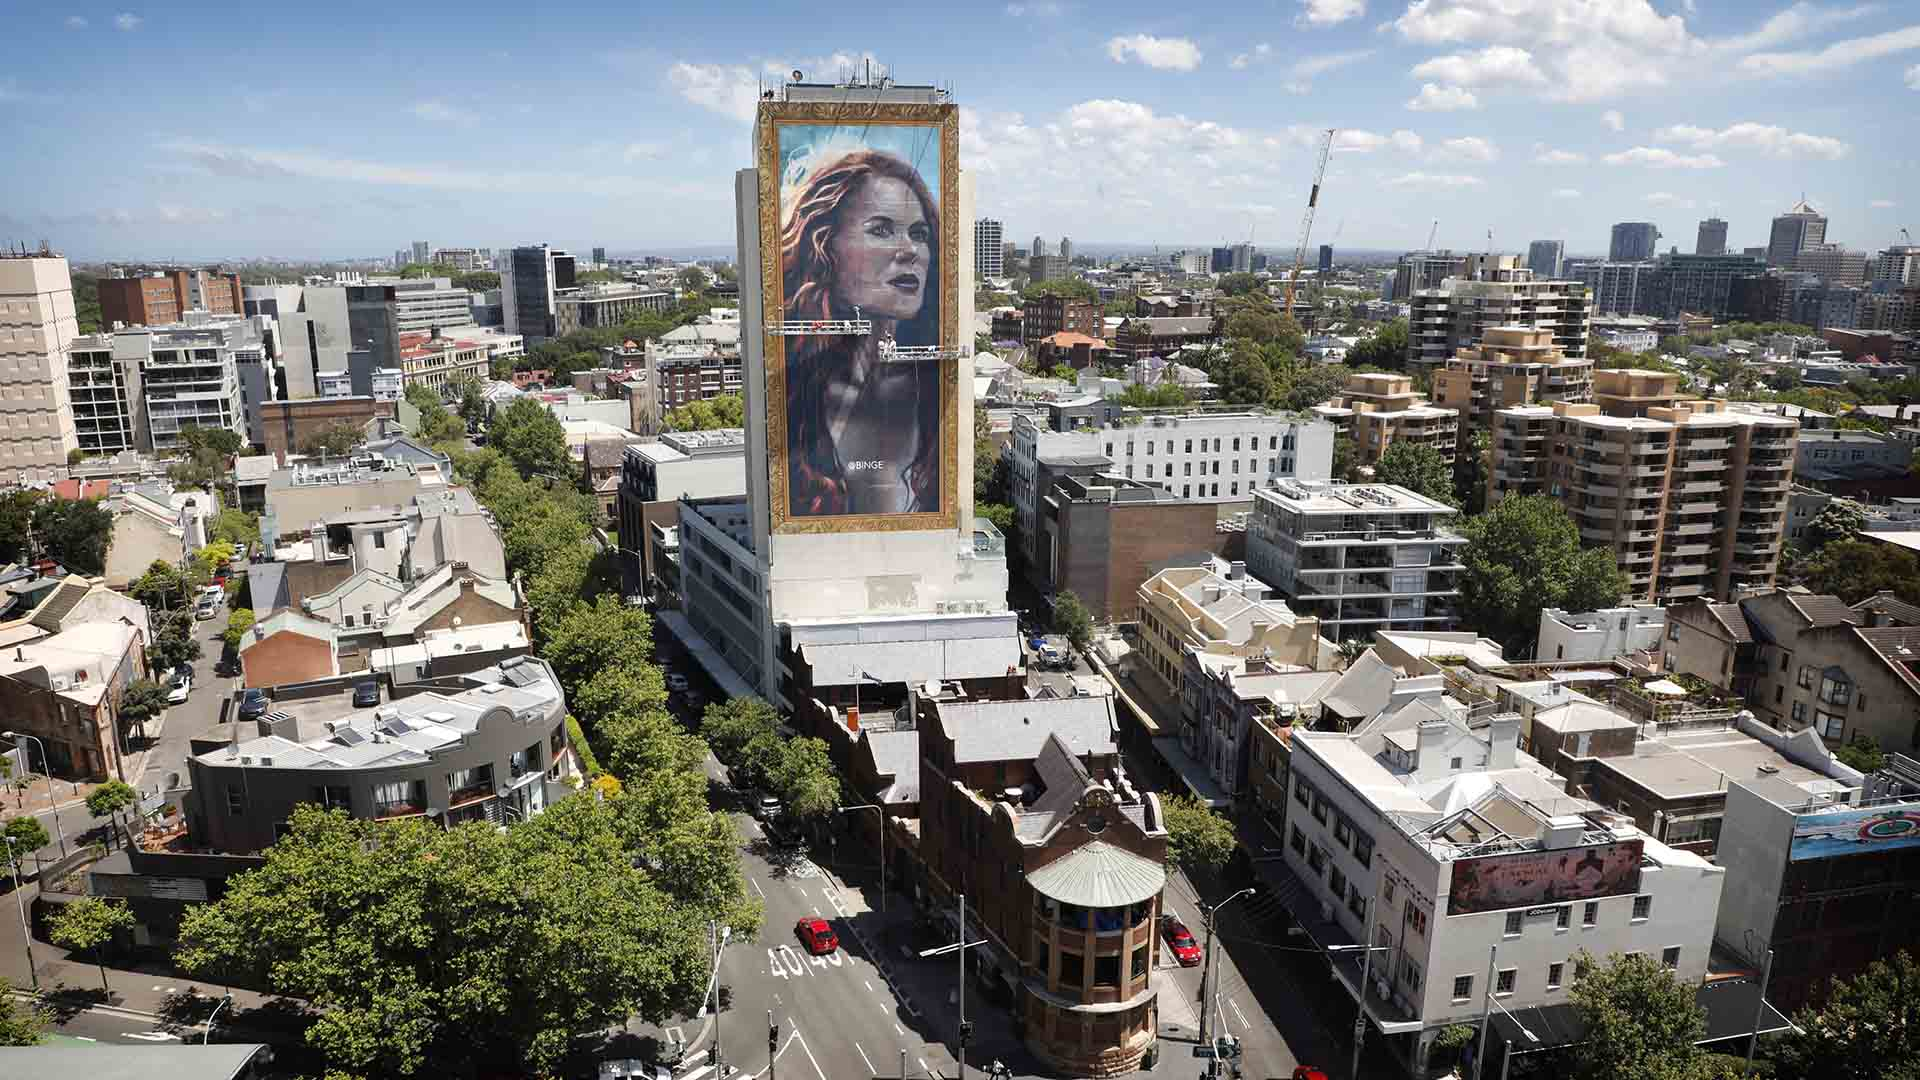 A Towering 18-Storey Painting of Nicole Kidman Has Temporarily Popped Up in Sydney